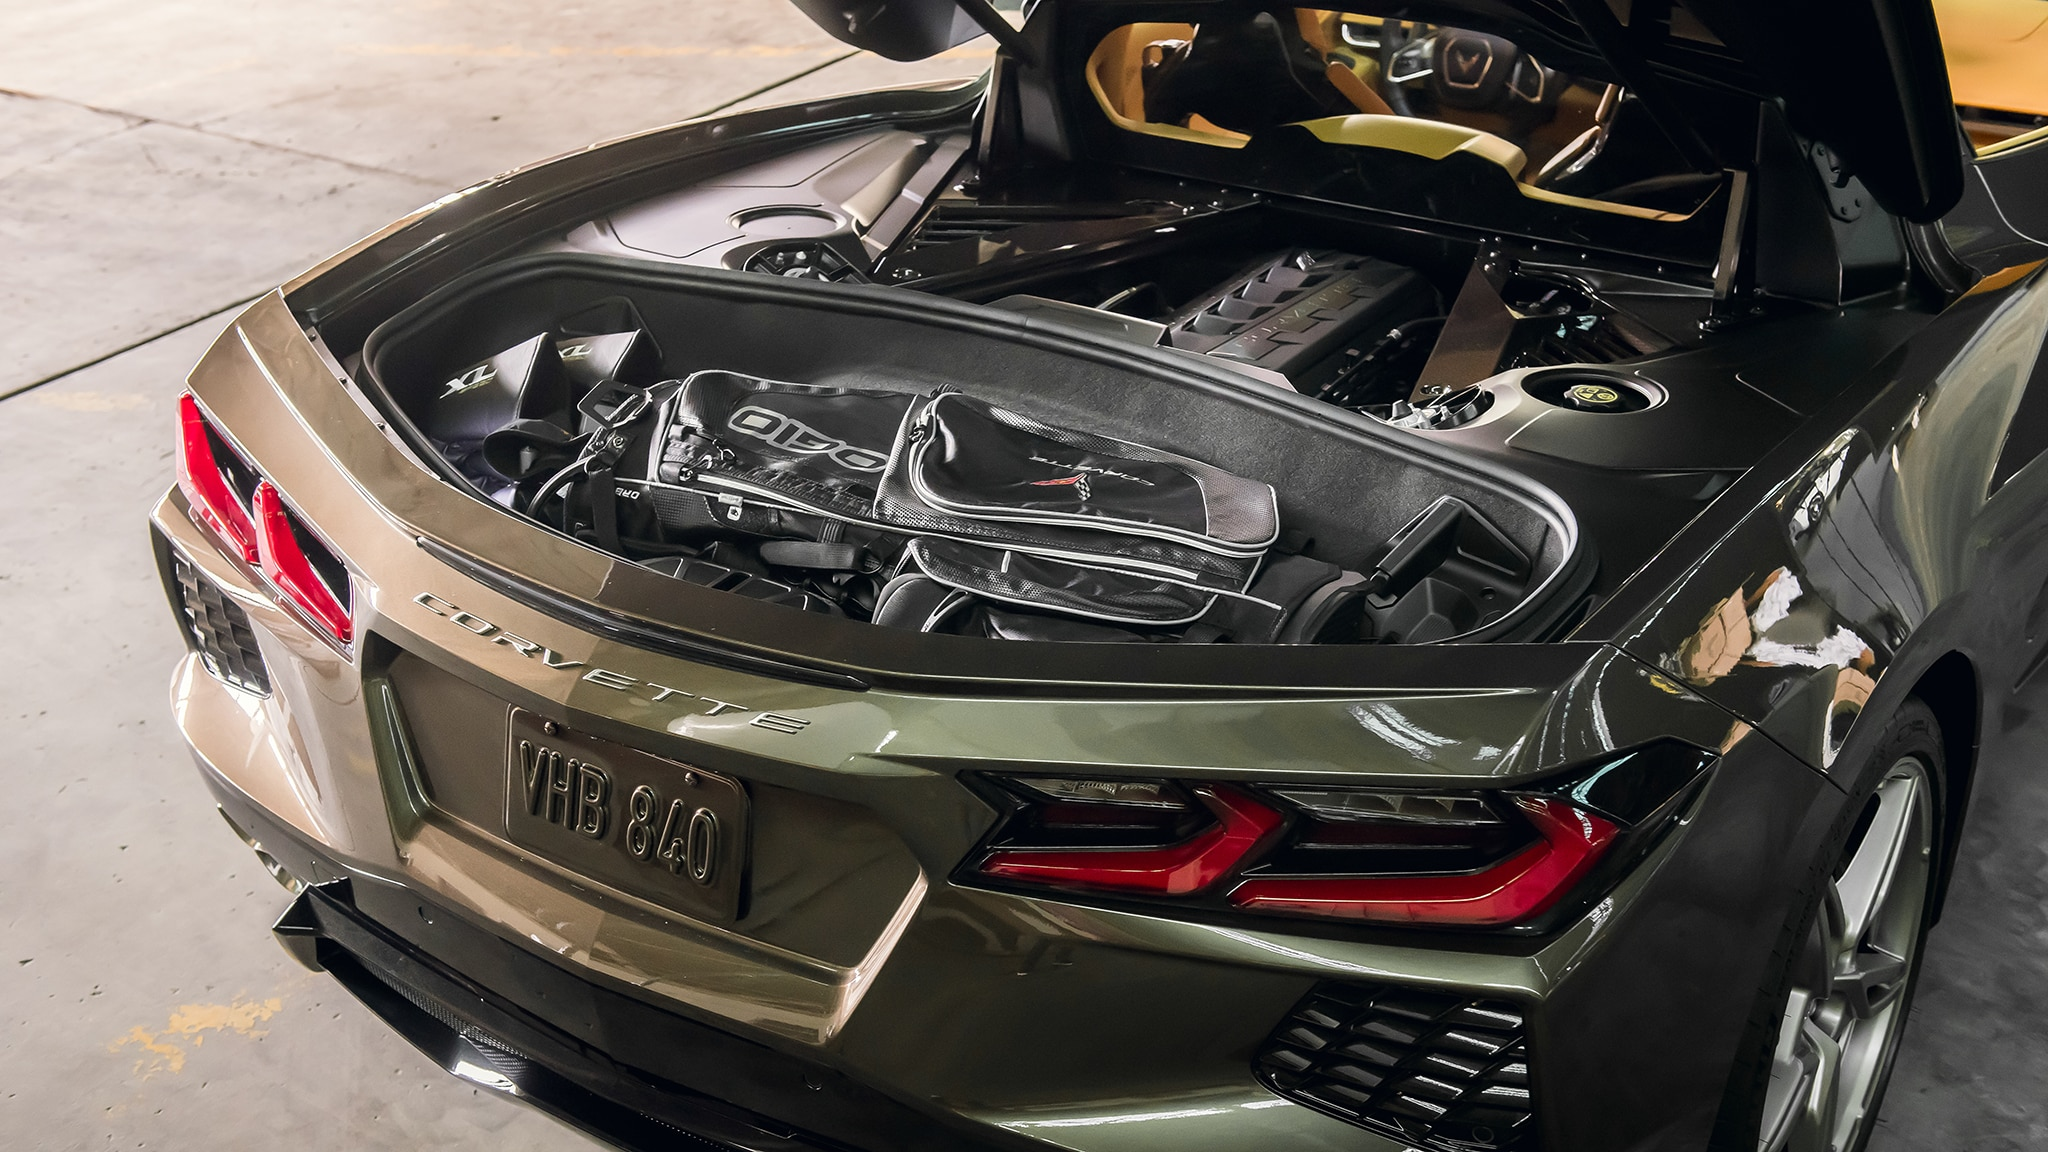 Why Did the 2020 Corvette C8 Move Its Engine? | Automobile ...